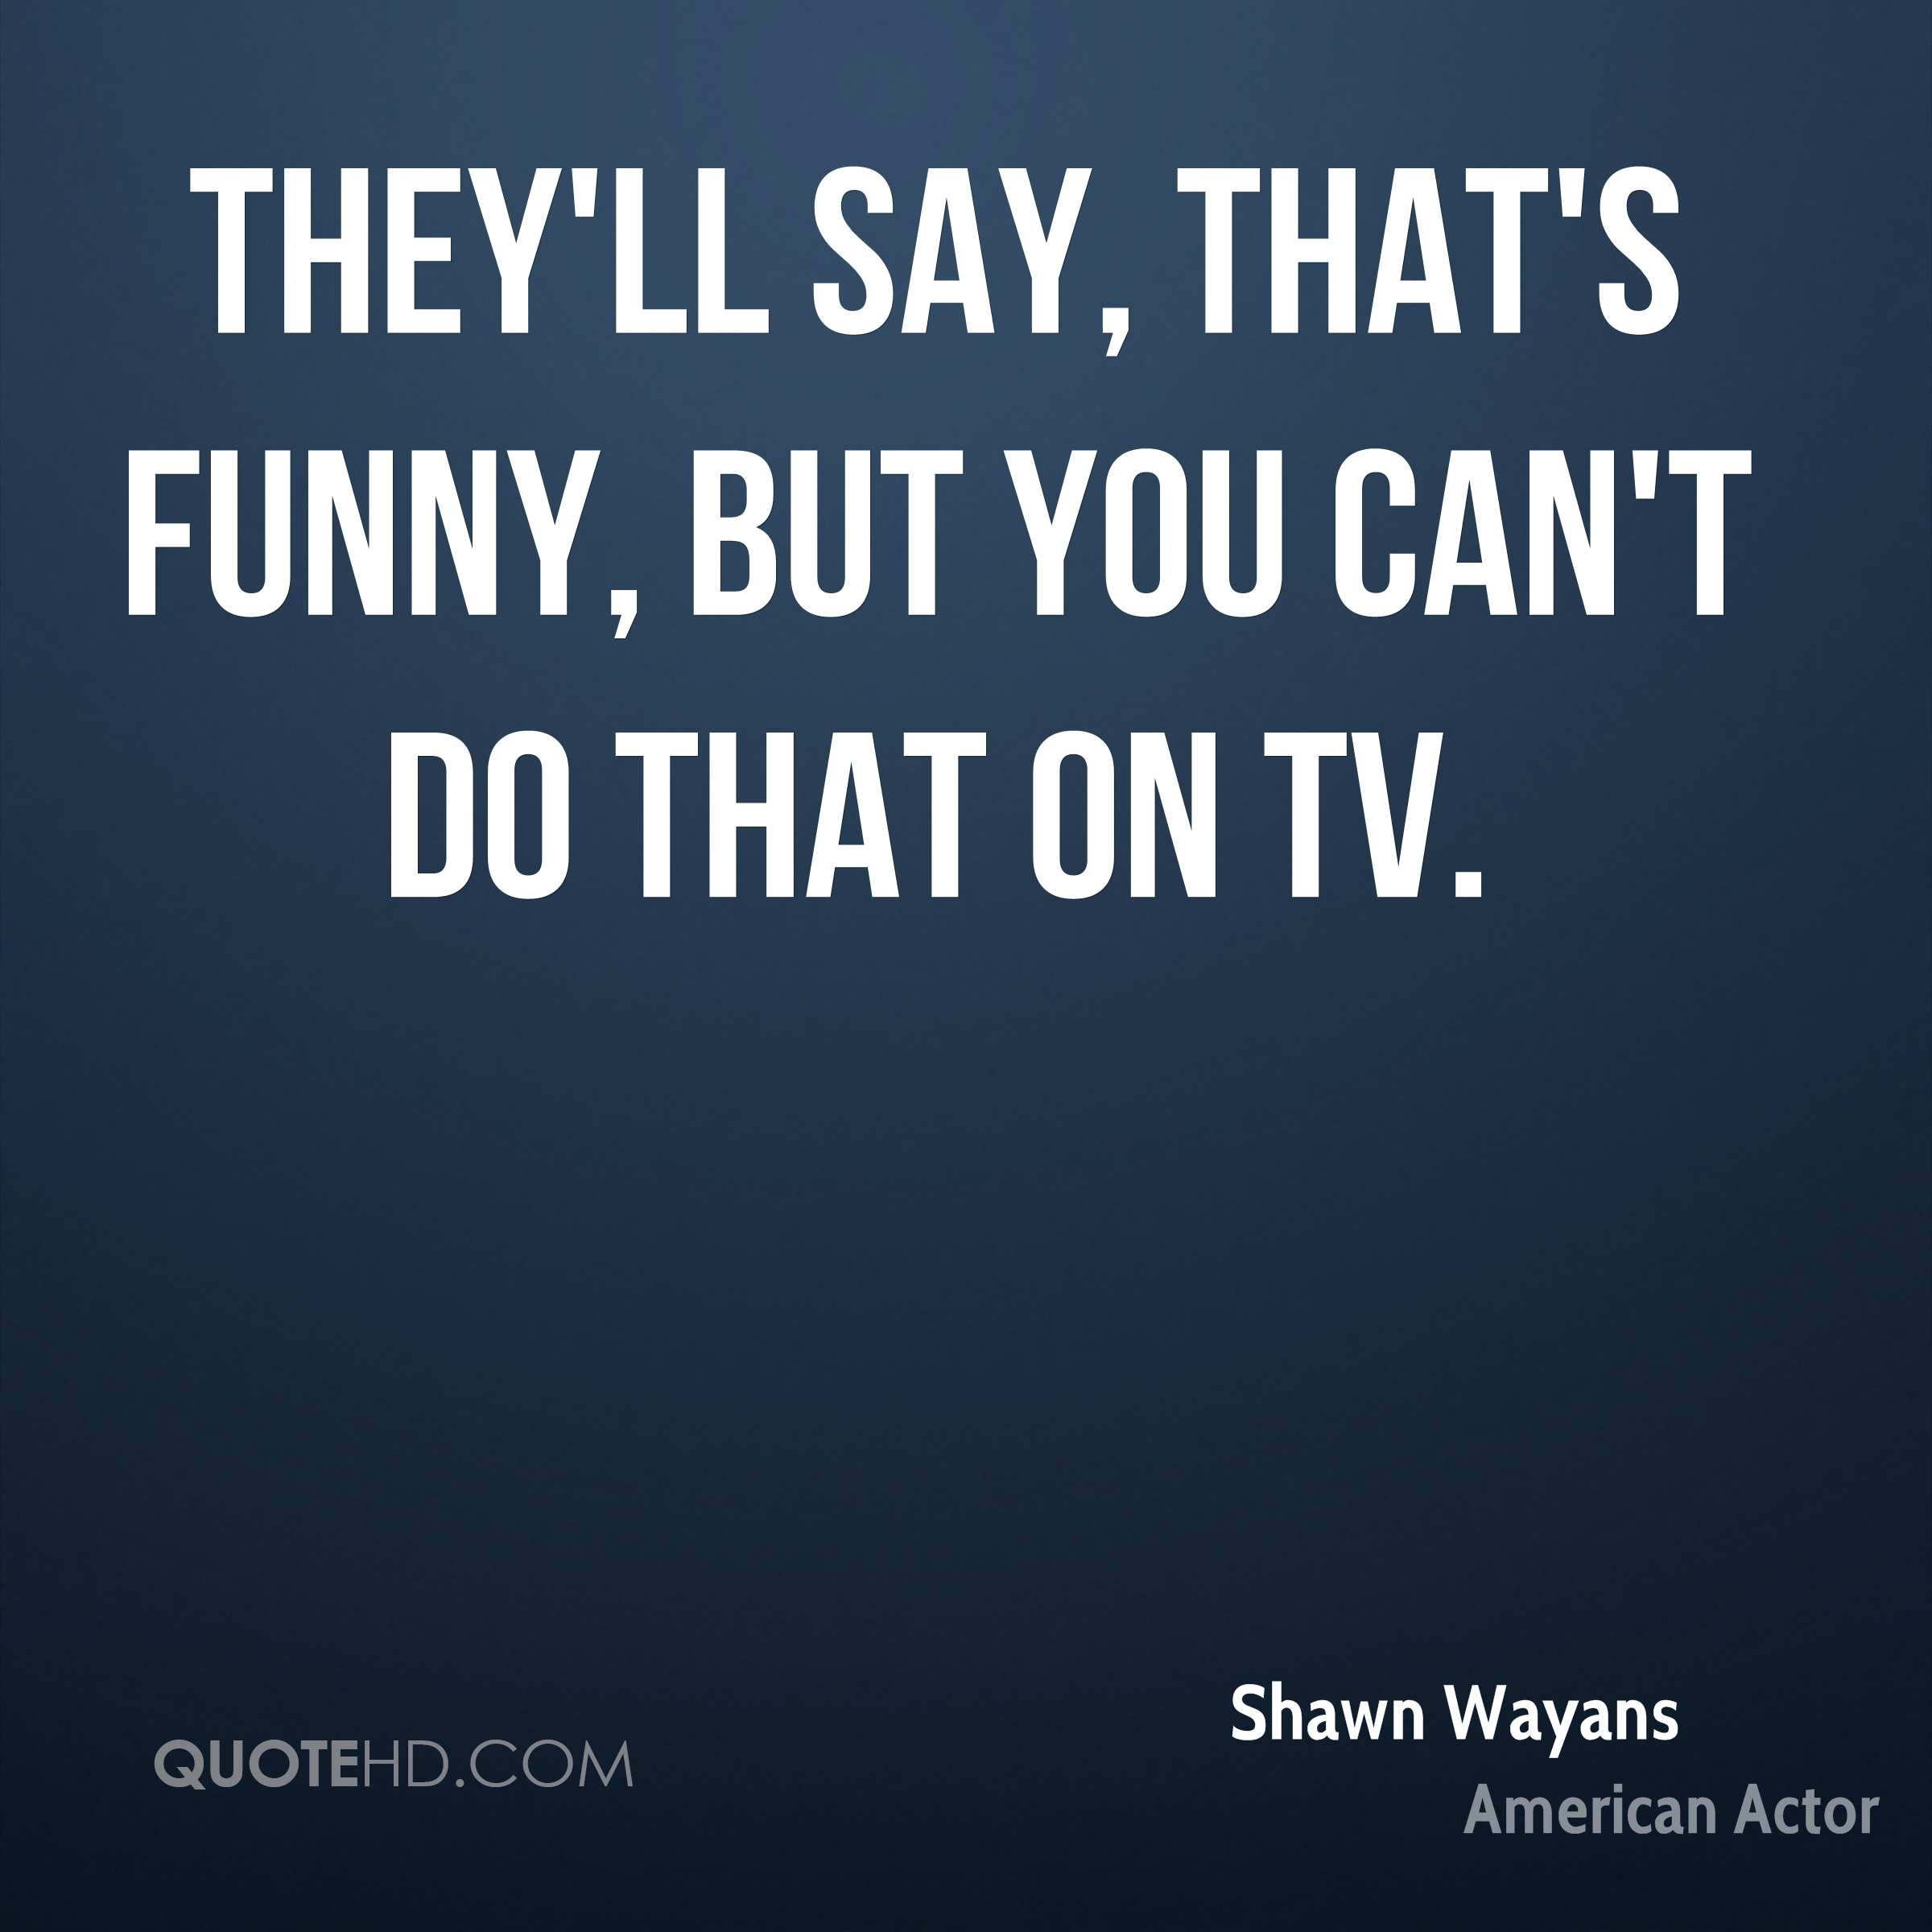 They'll say, That's funny, but you can't do that on TV.